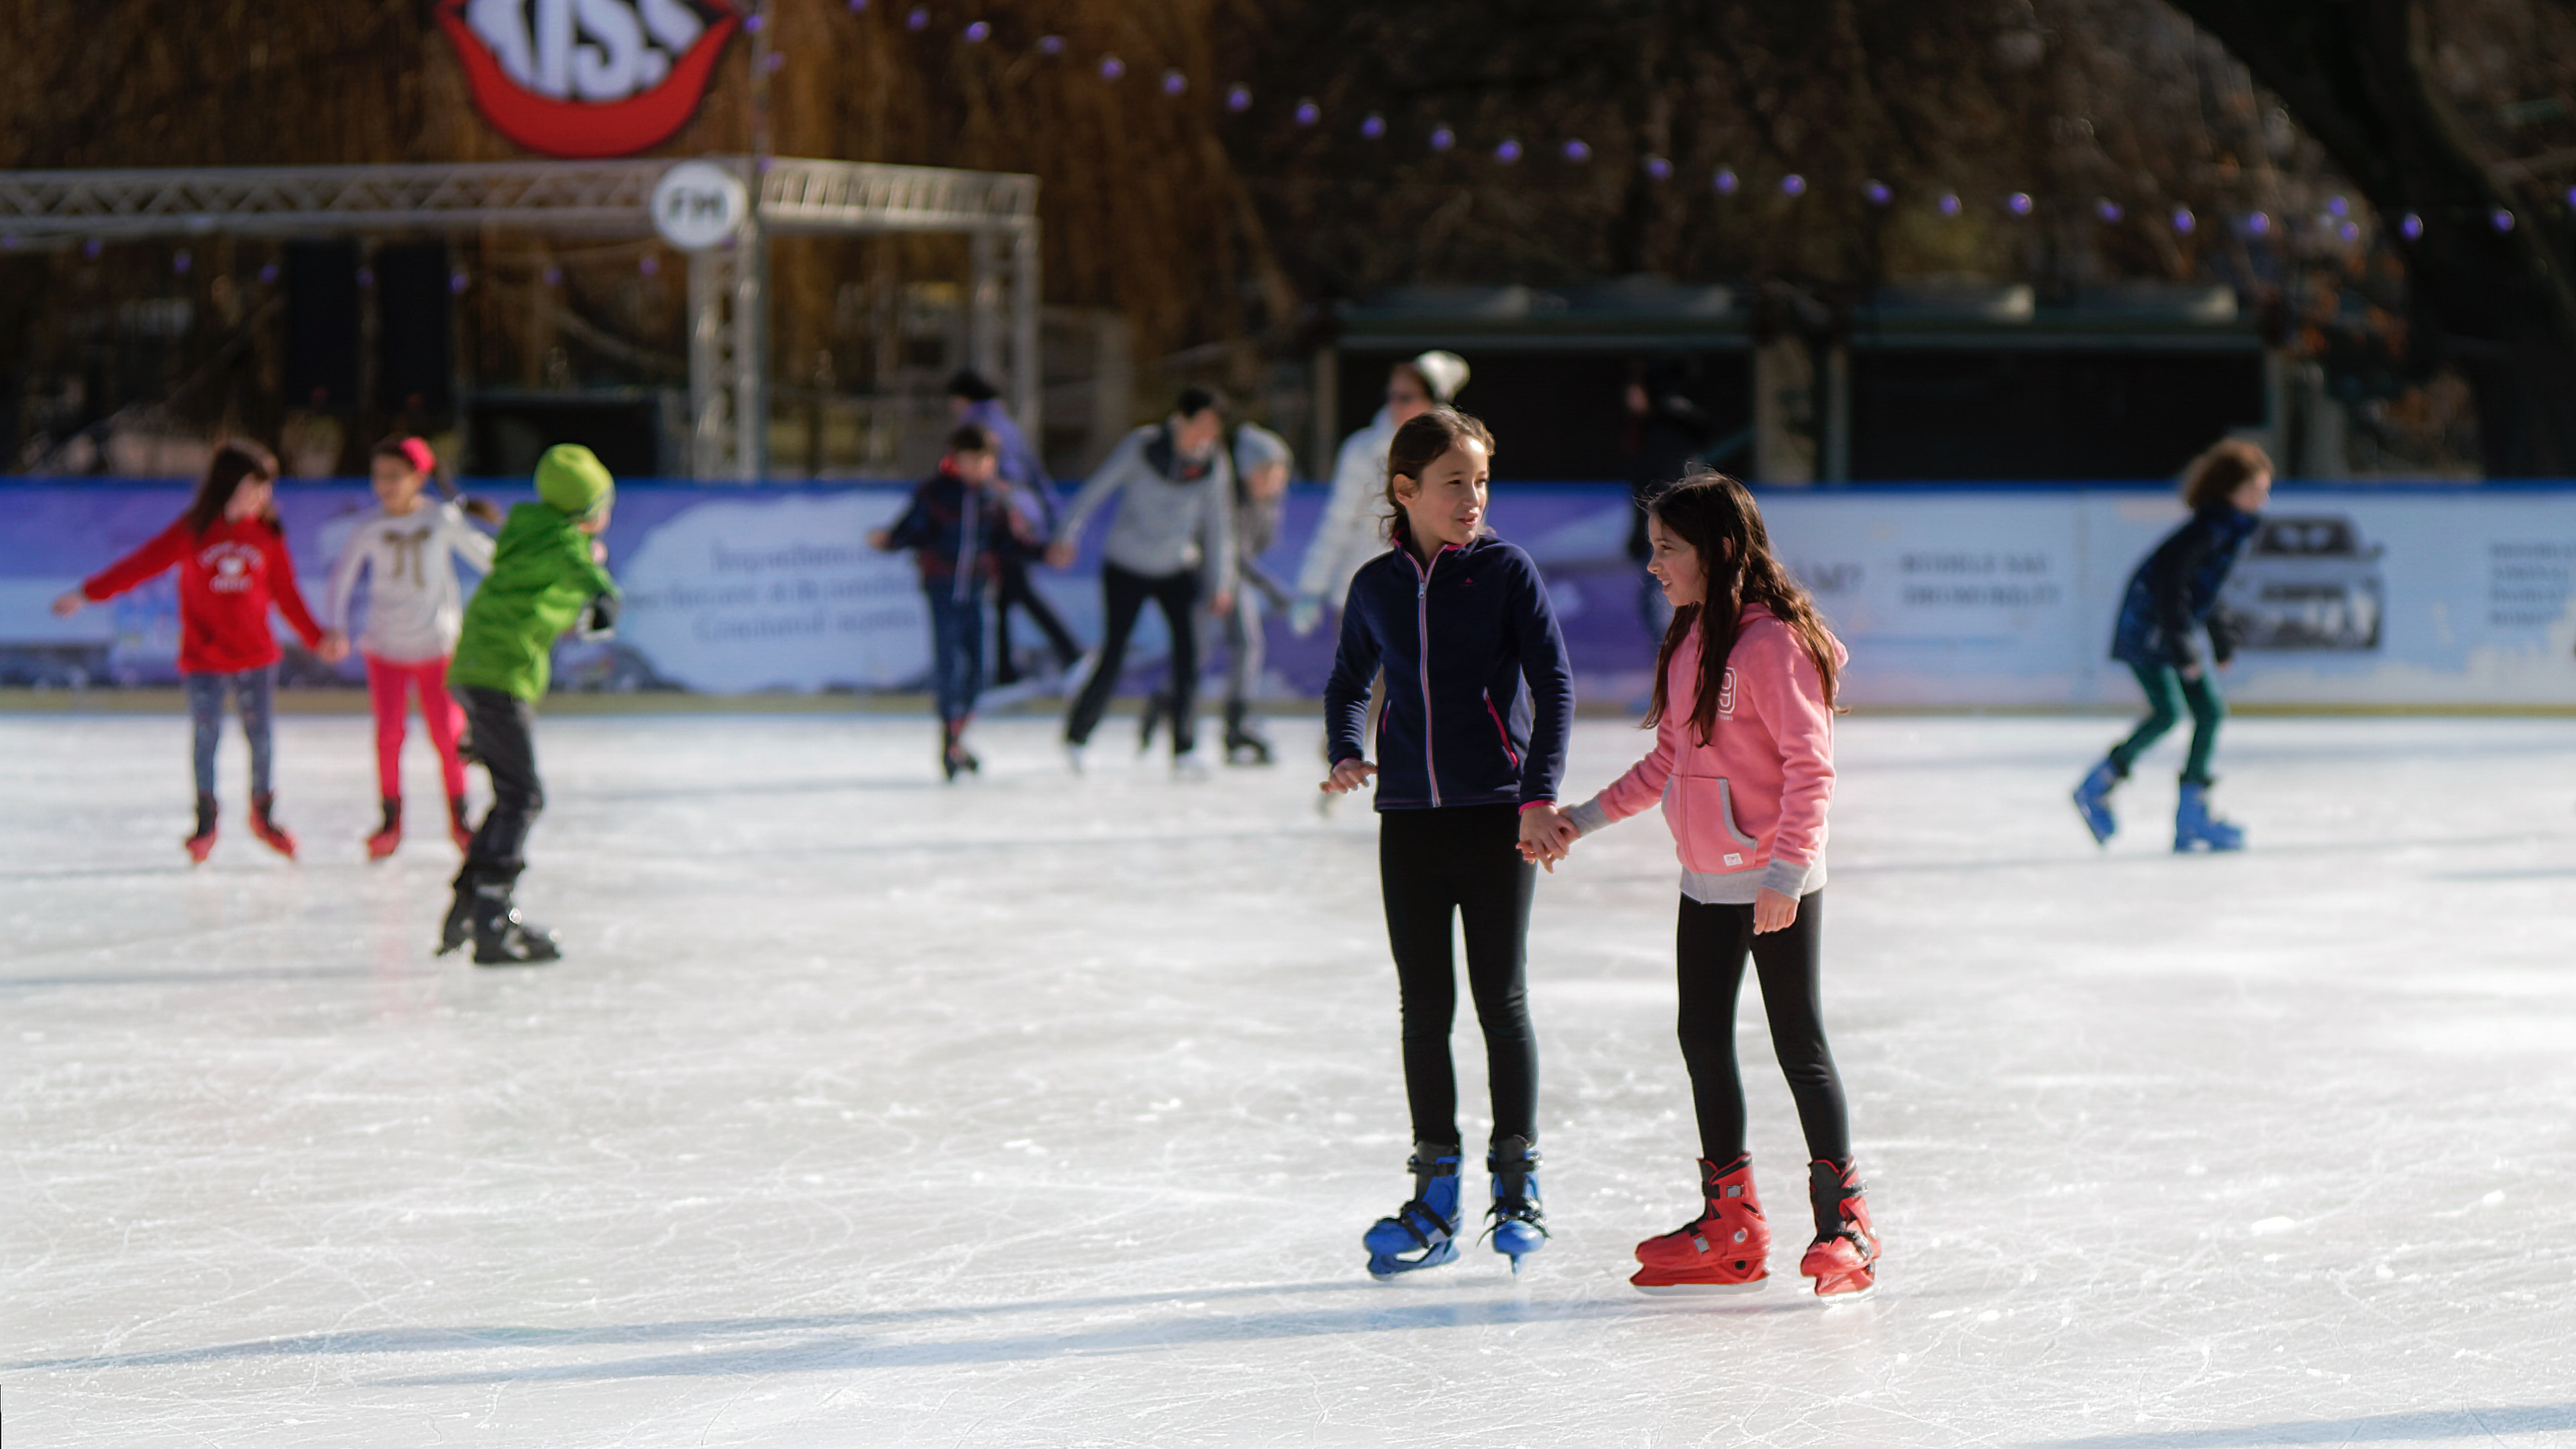 Free stock photo of children, ice skating rink, two young girls skating